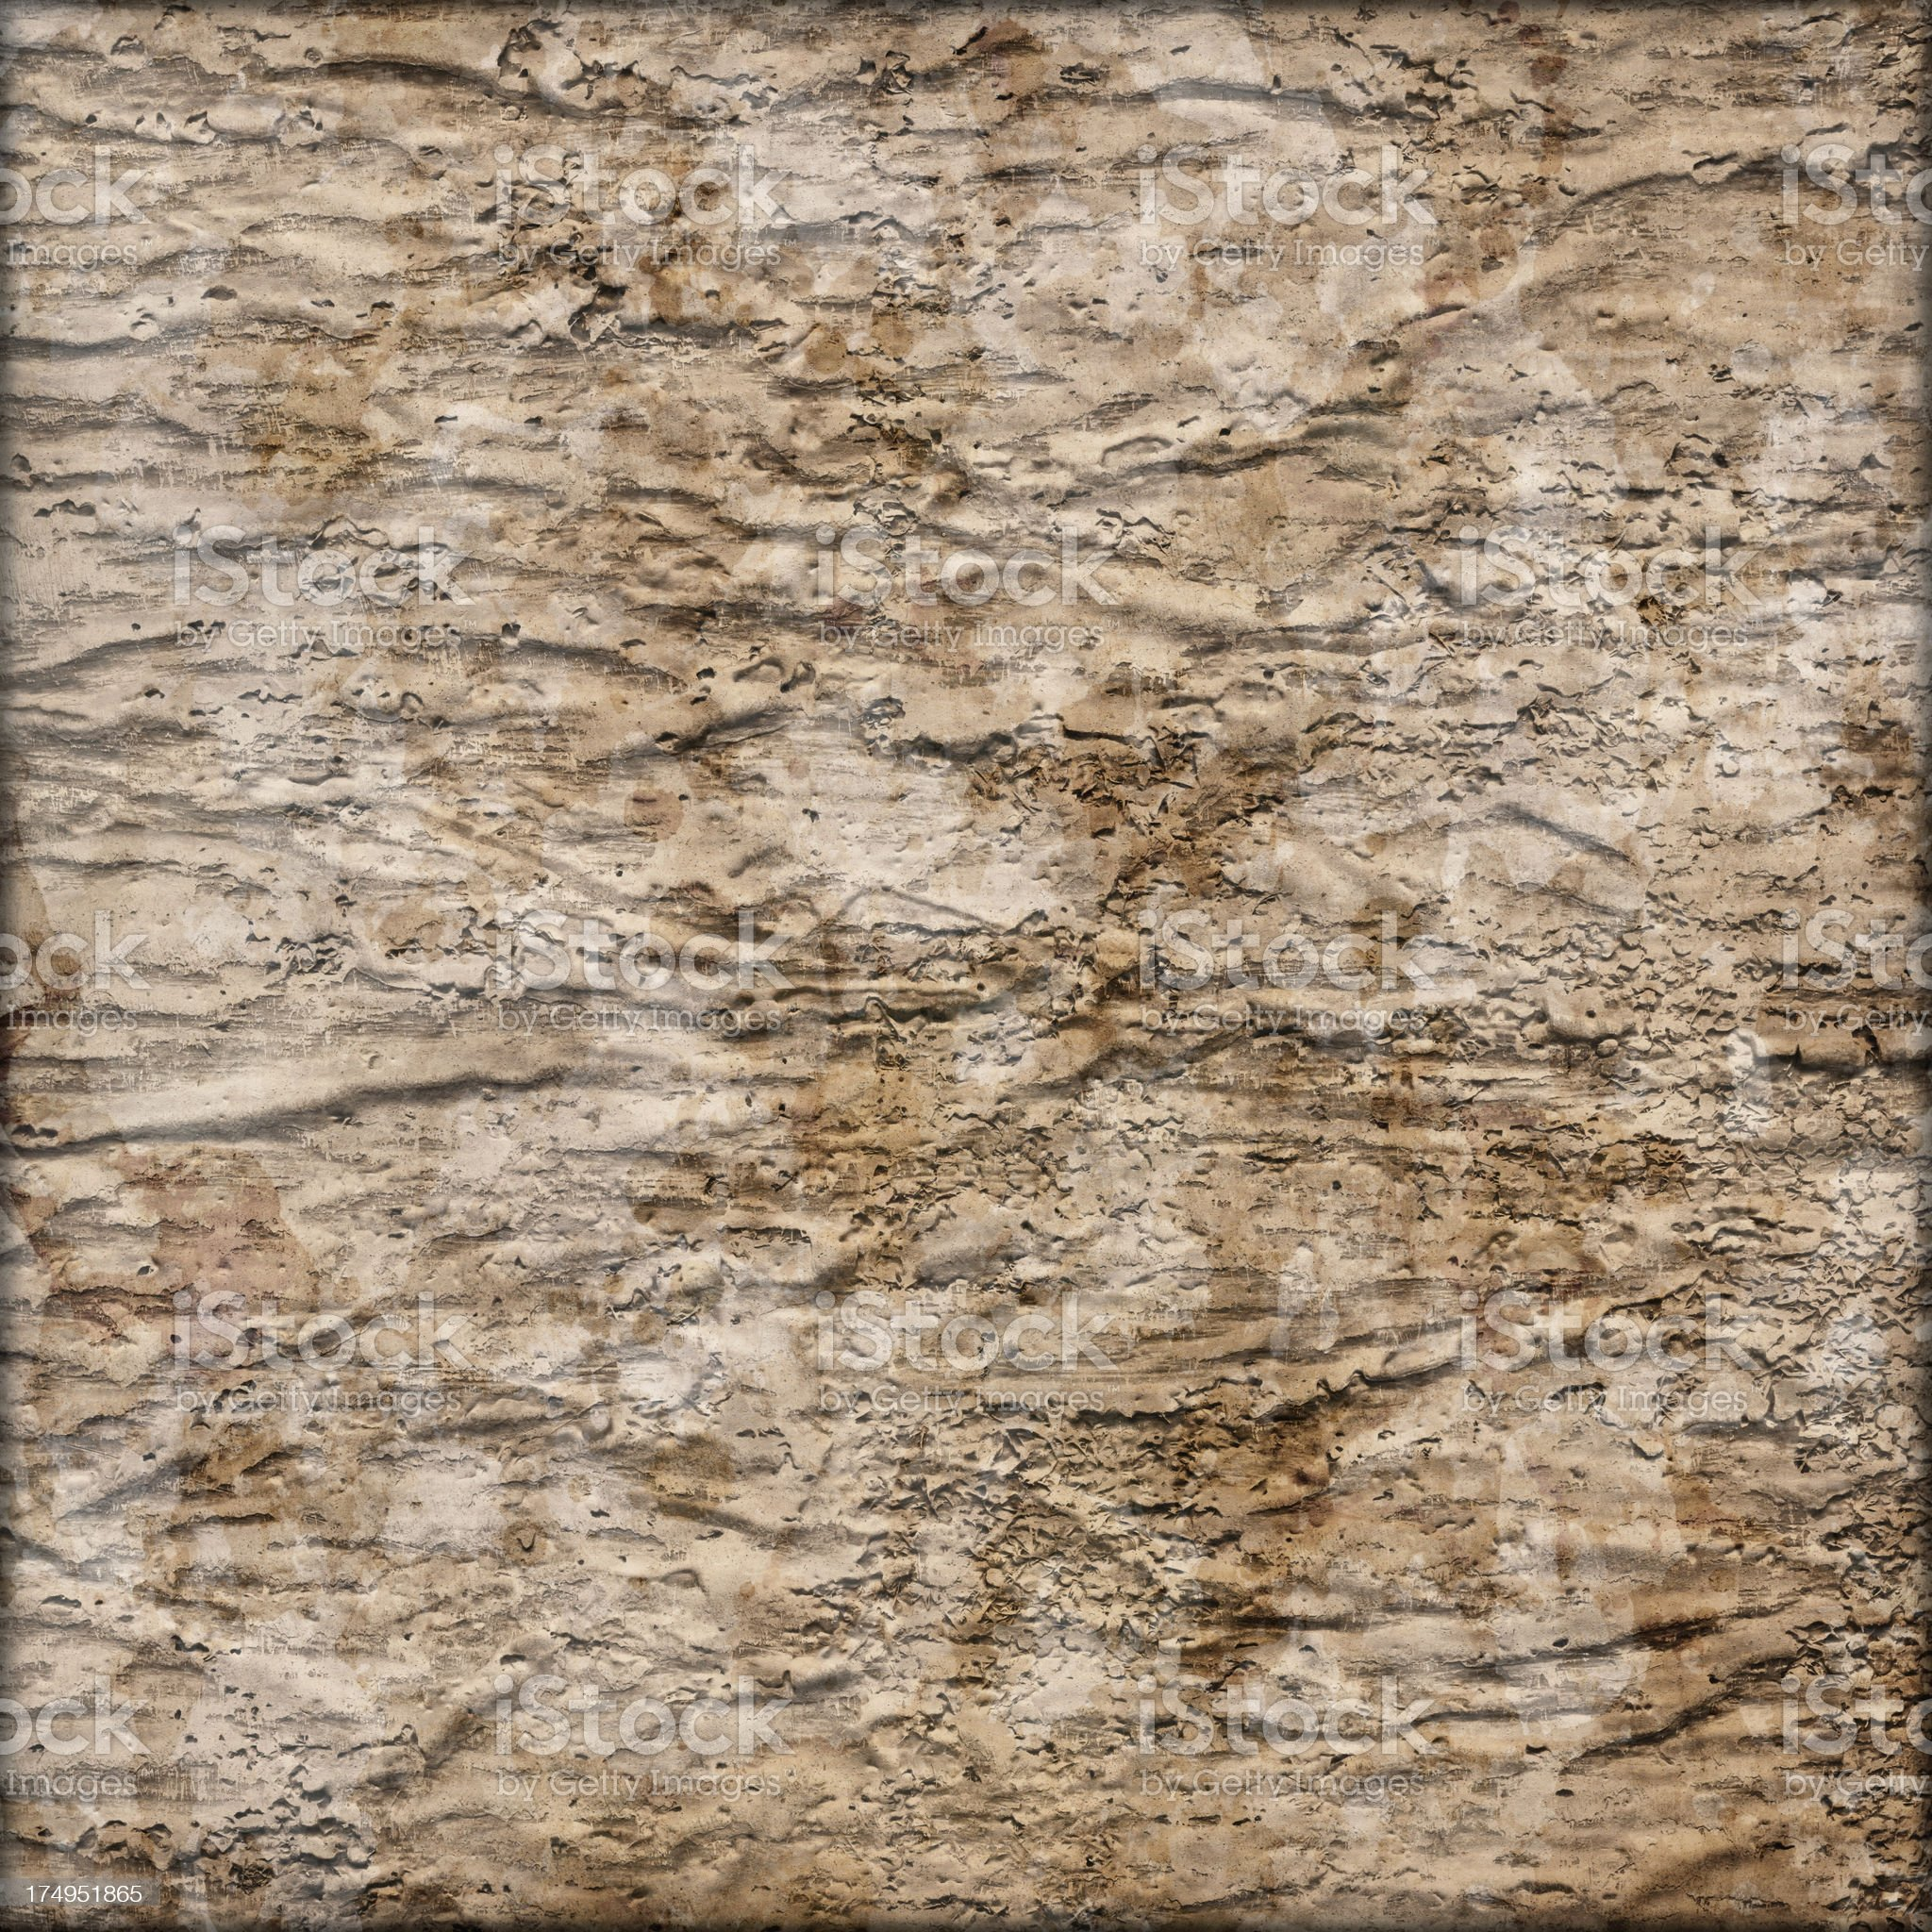 Hi-Res Primed Jute Canvas Crushed Peeled Mottled Vignette Grunge Texture royalty-free stock photo